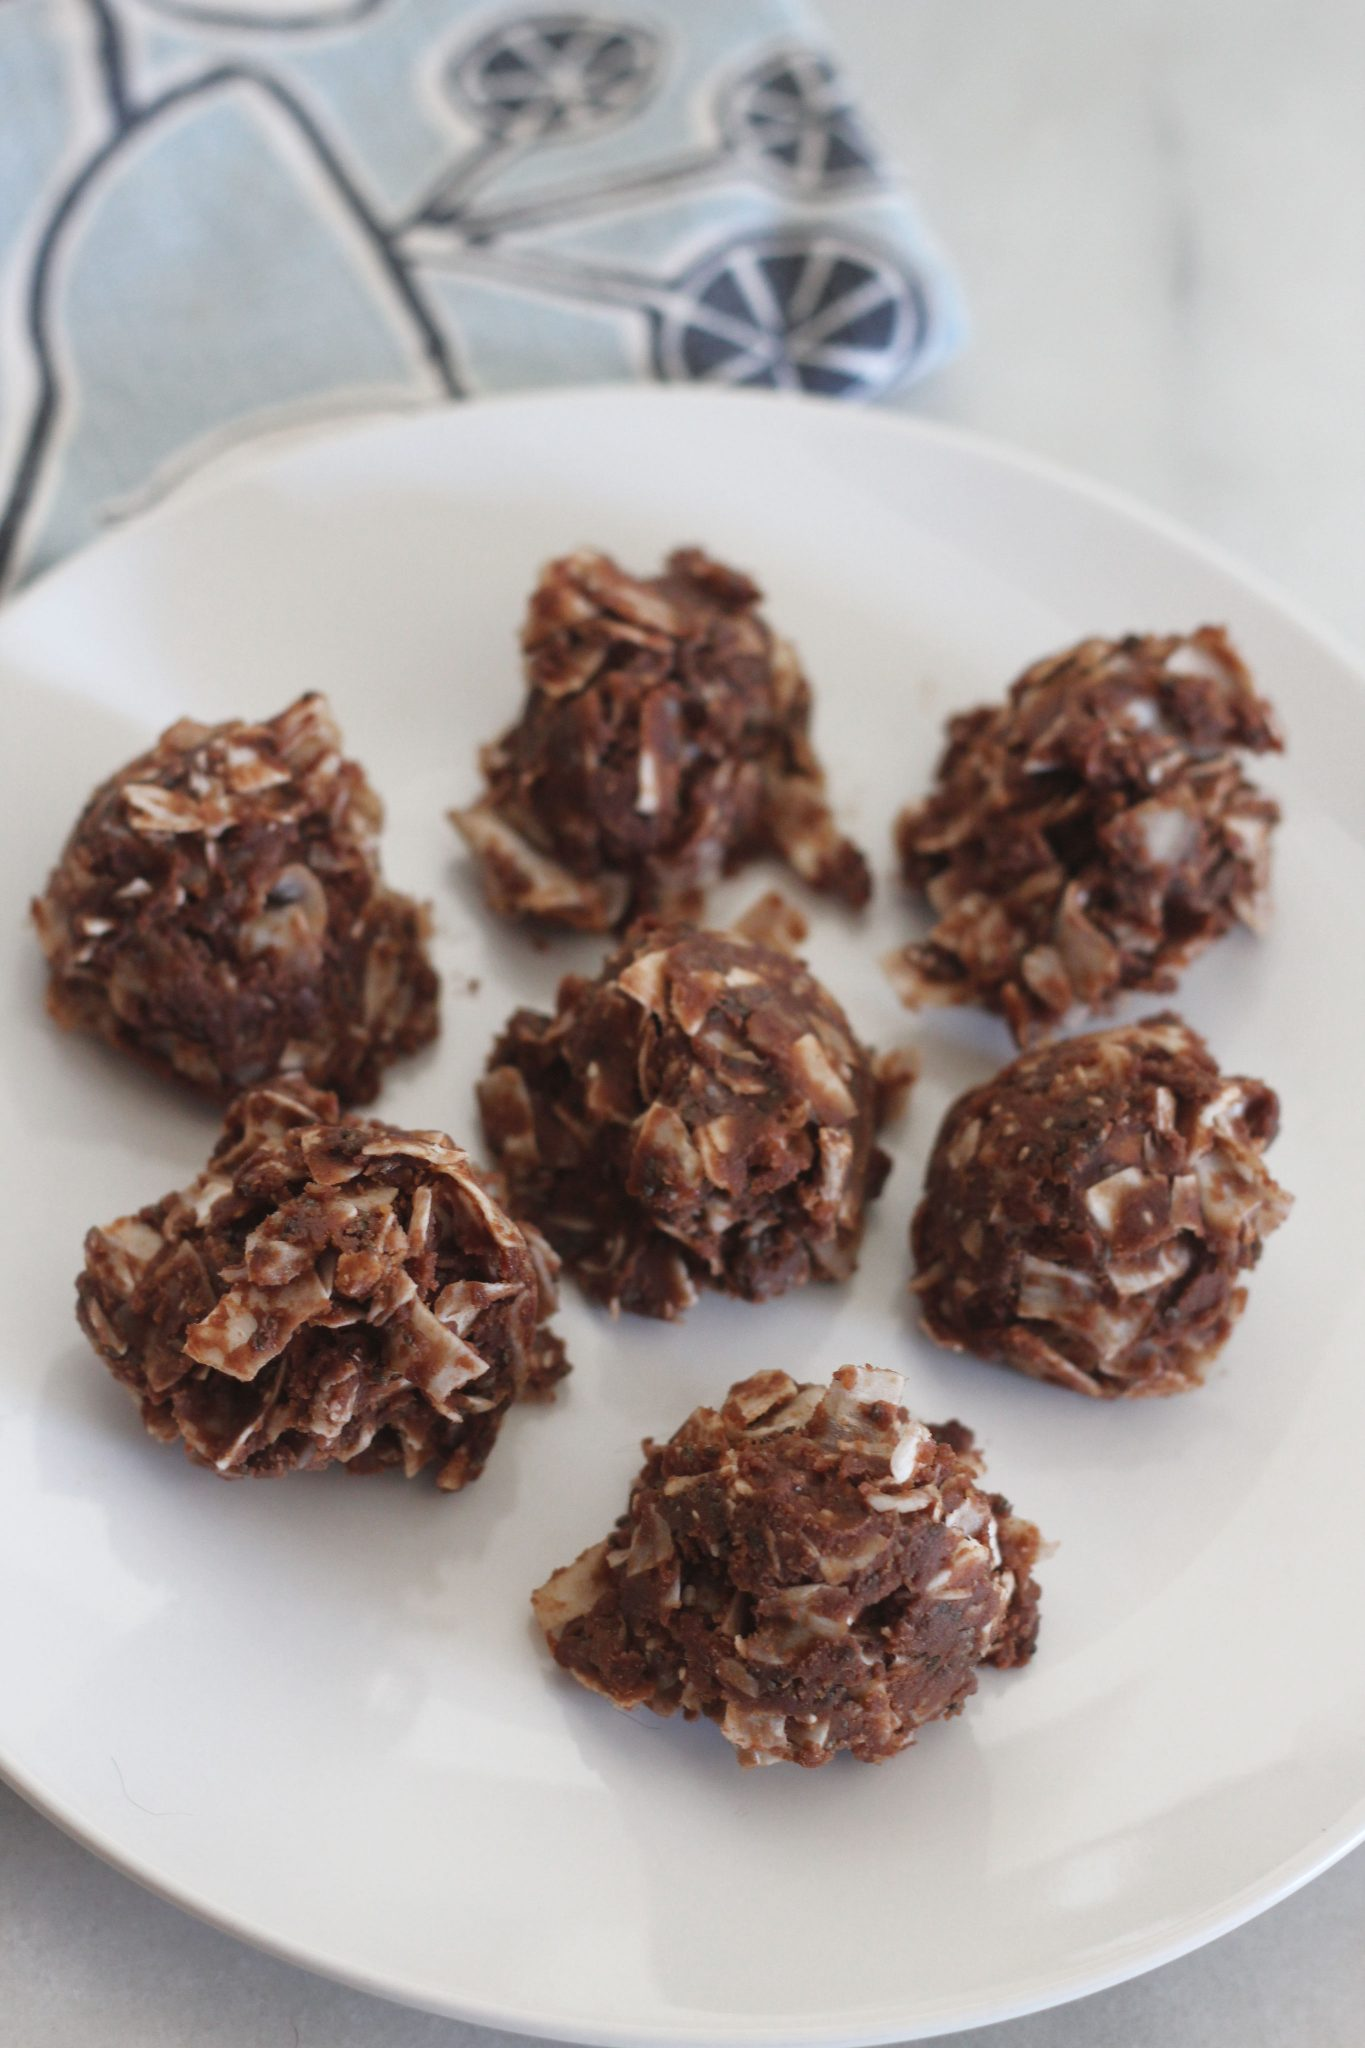 Chocolate coconut frozen nut butter bites! These delicious little fat bombs are perfect to keep in the freezer for those moments that you need a sweet snack. #lowcarbdelish #ketodesserts #fatbombs #chocolatepeanutbutterbites #lowcarbdesserts #ketorecipes